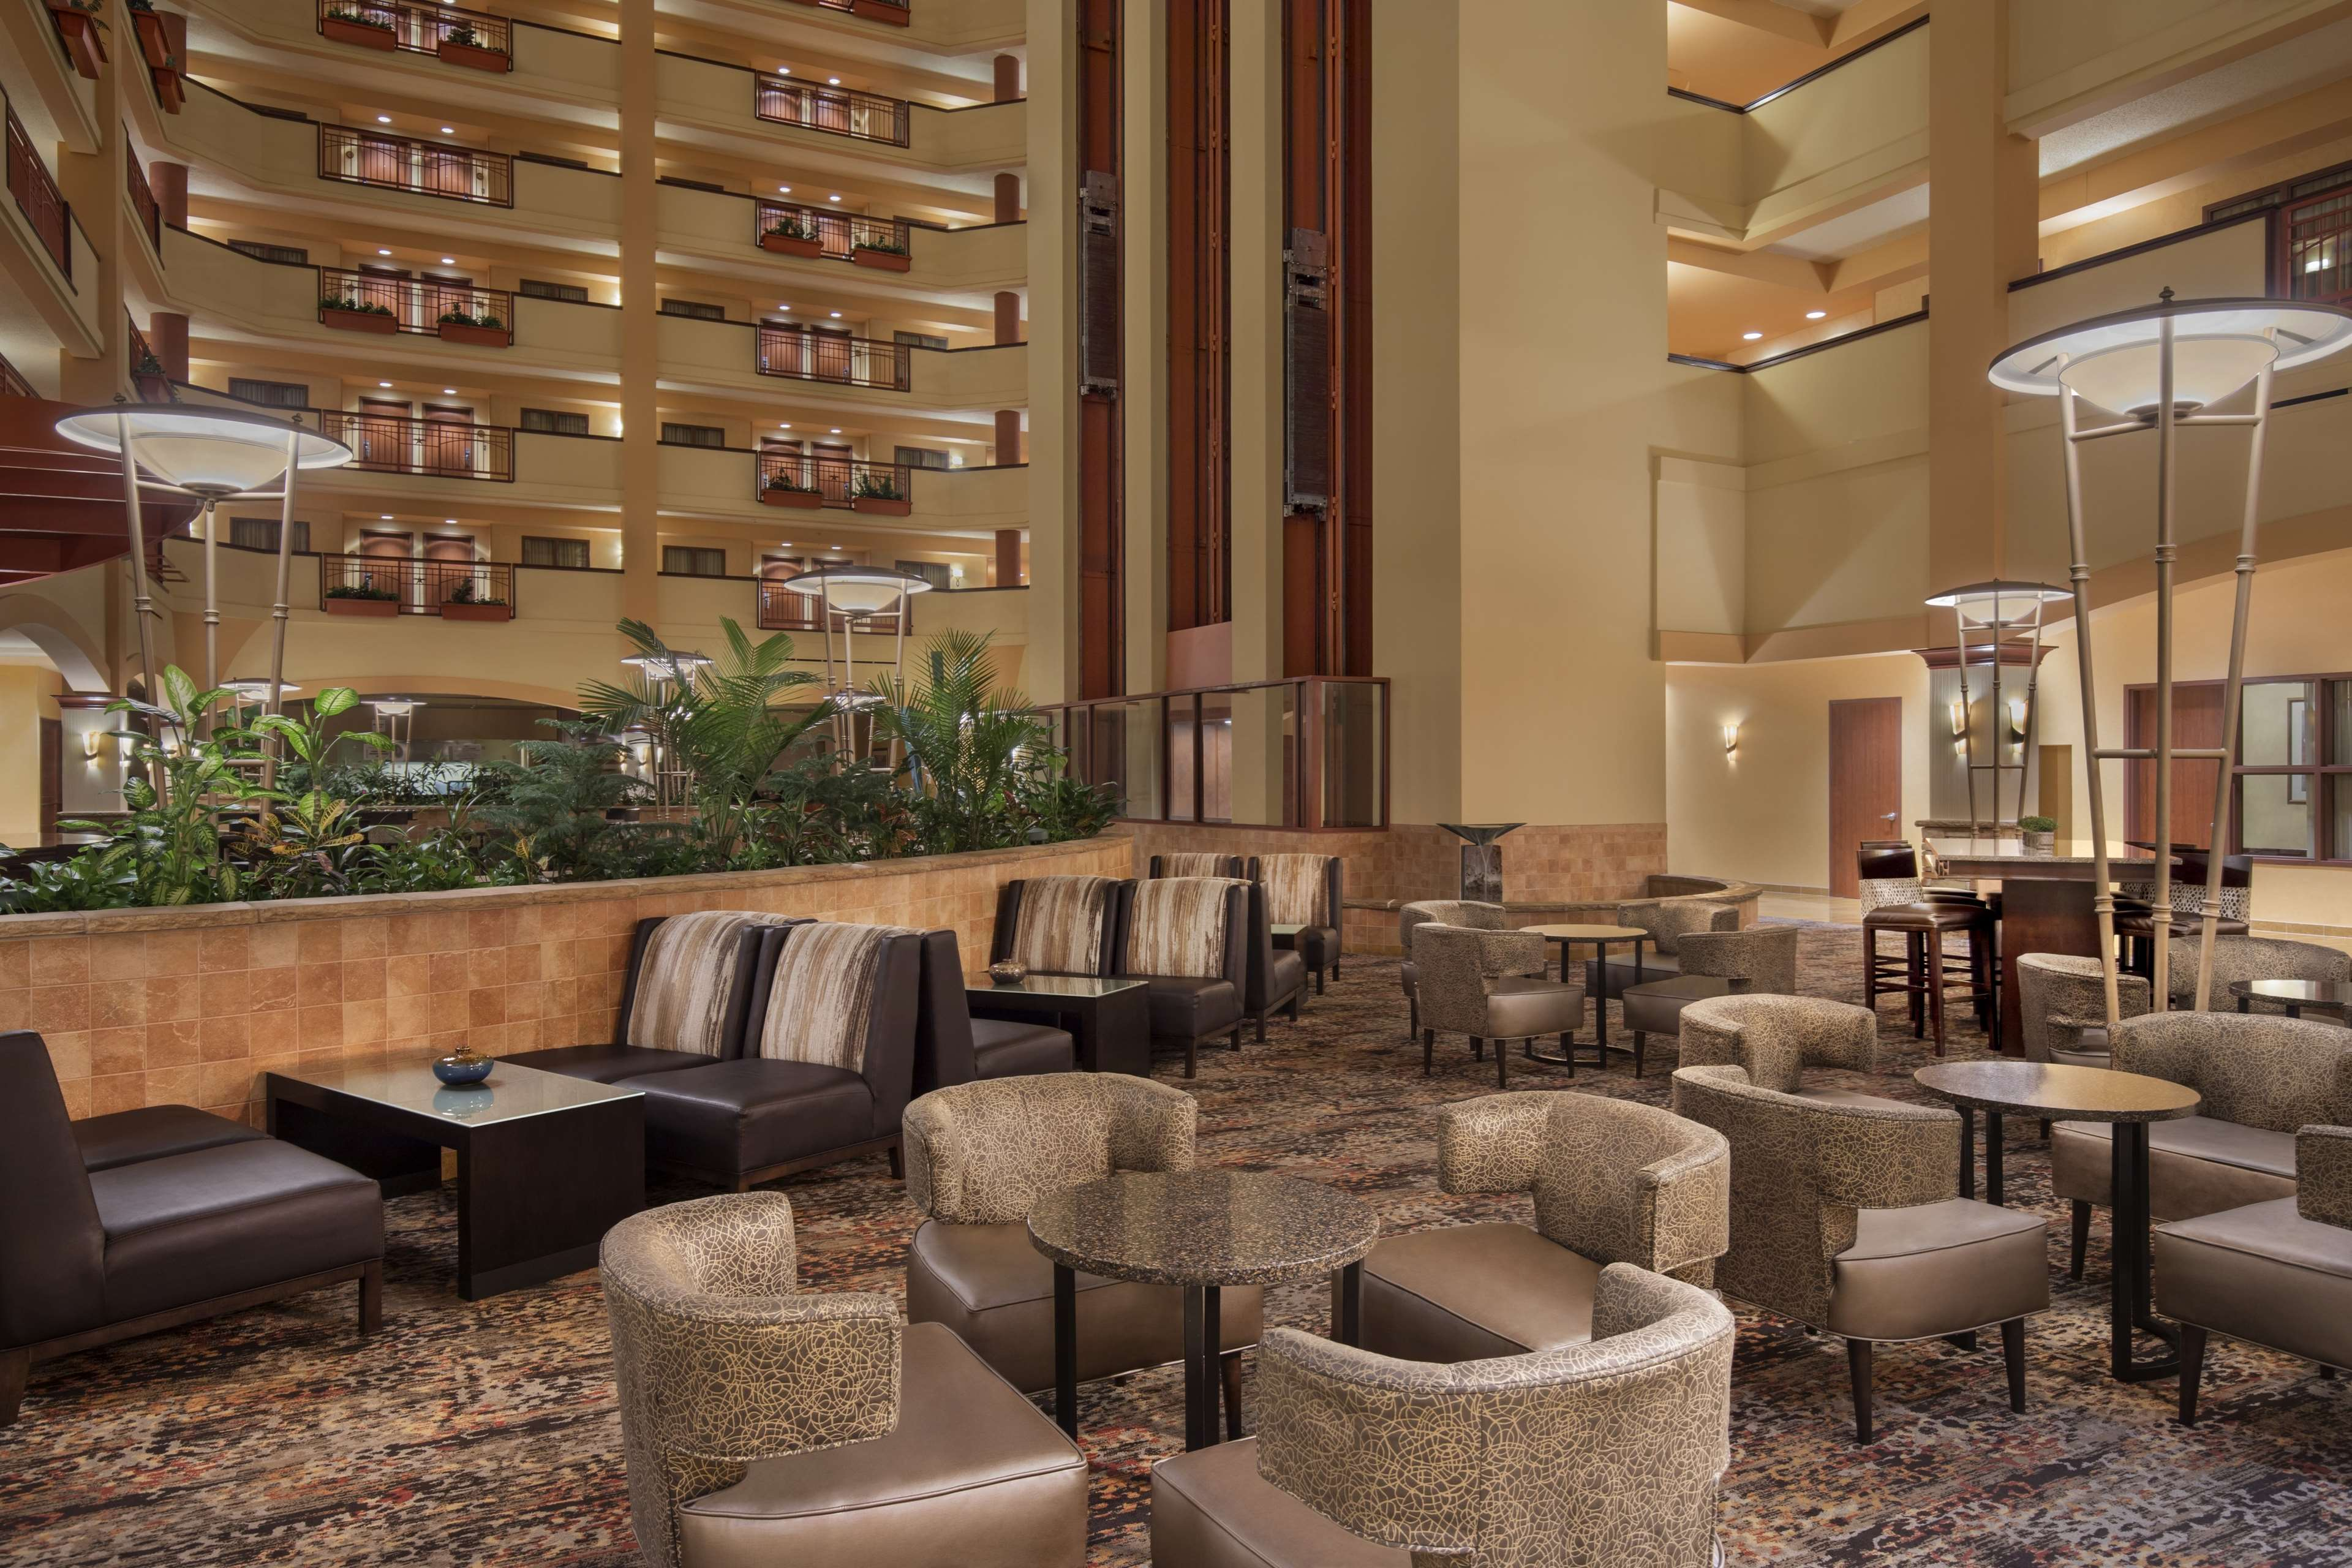 Embassy Suites by Hilton San Marcos Hotel Conference Center & Spa image 3